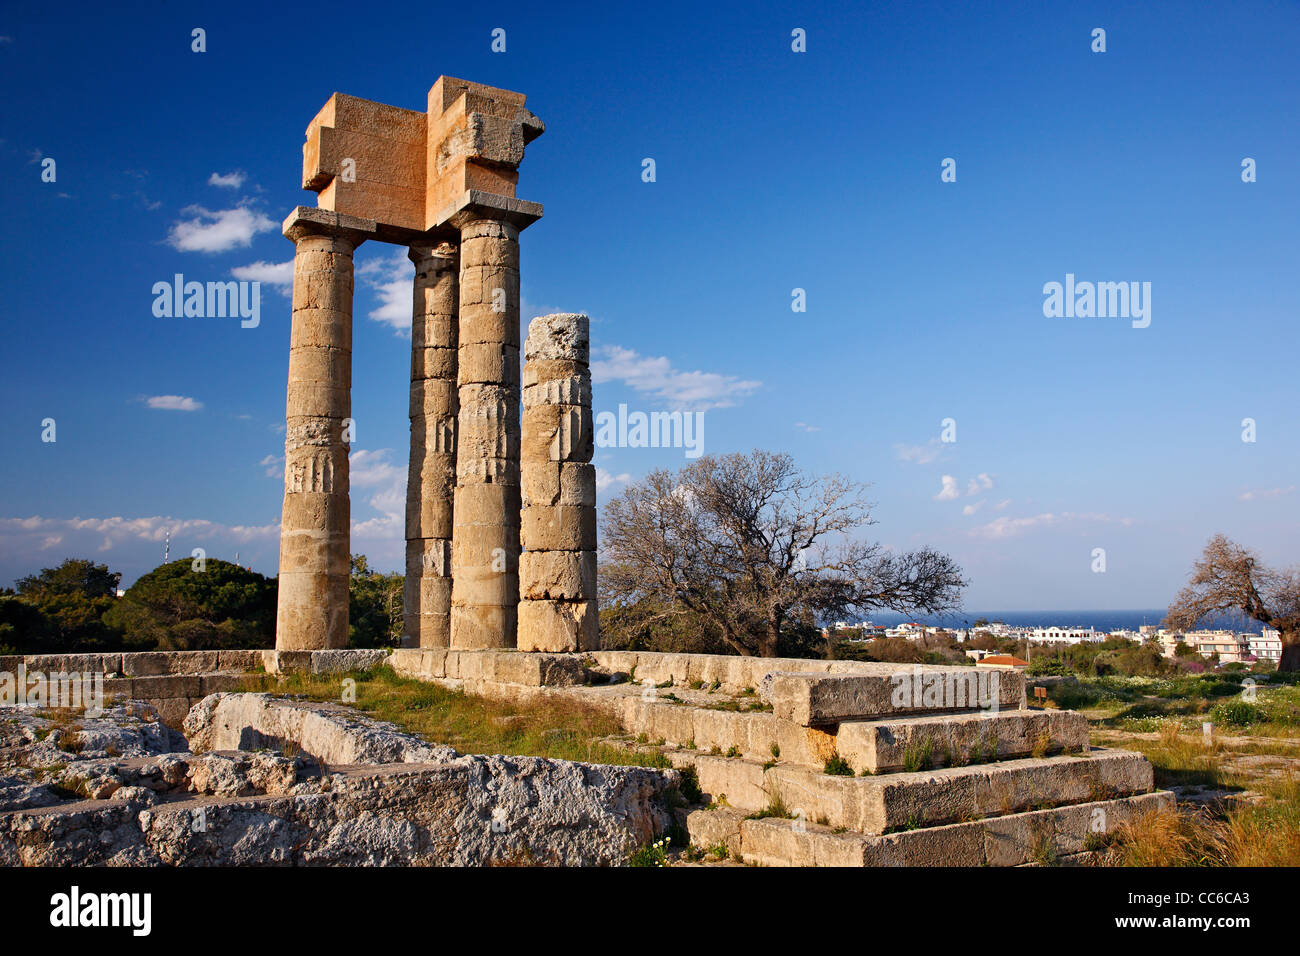 The temple of Pythion Apollo, on the hill of Monte Smith, where the Acropolis of ancient Rhodes is located, Dodecanese, - Stock Image